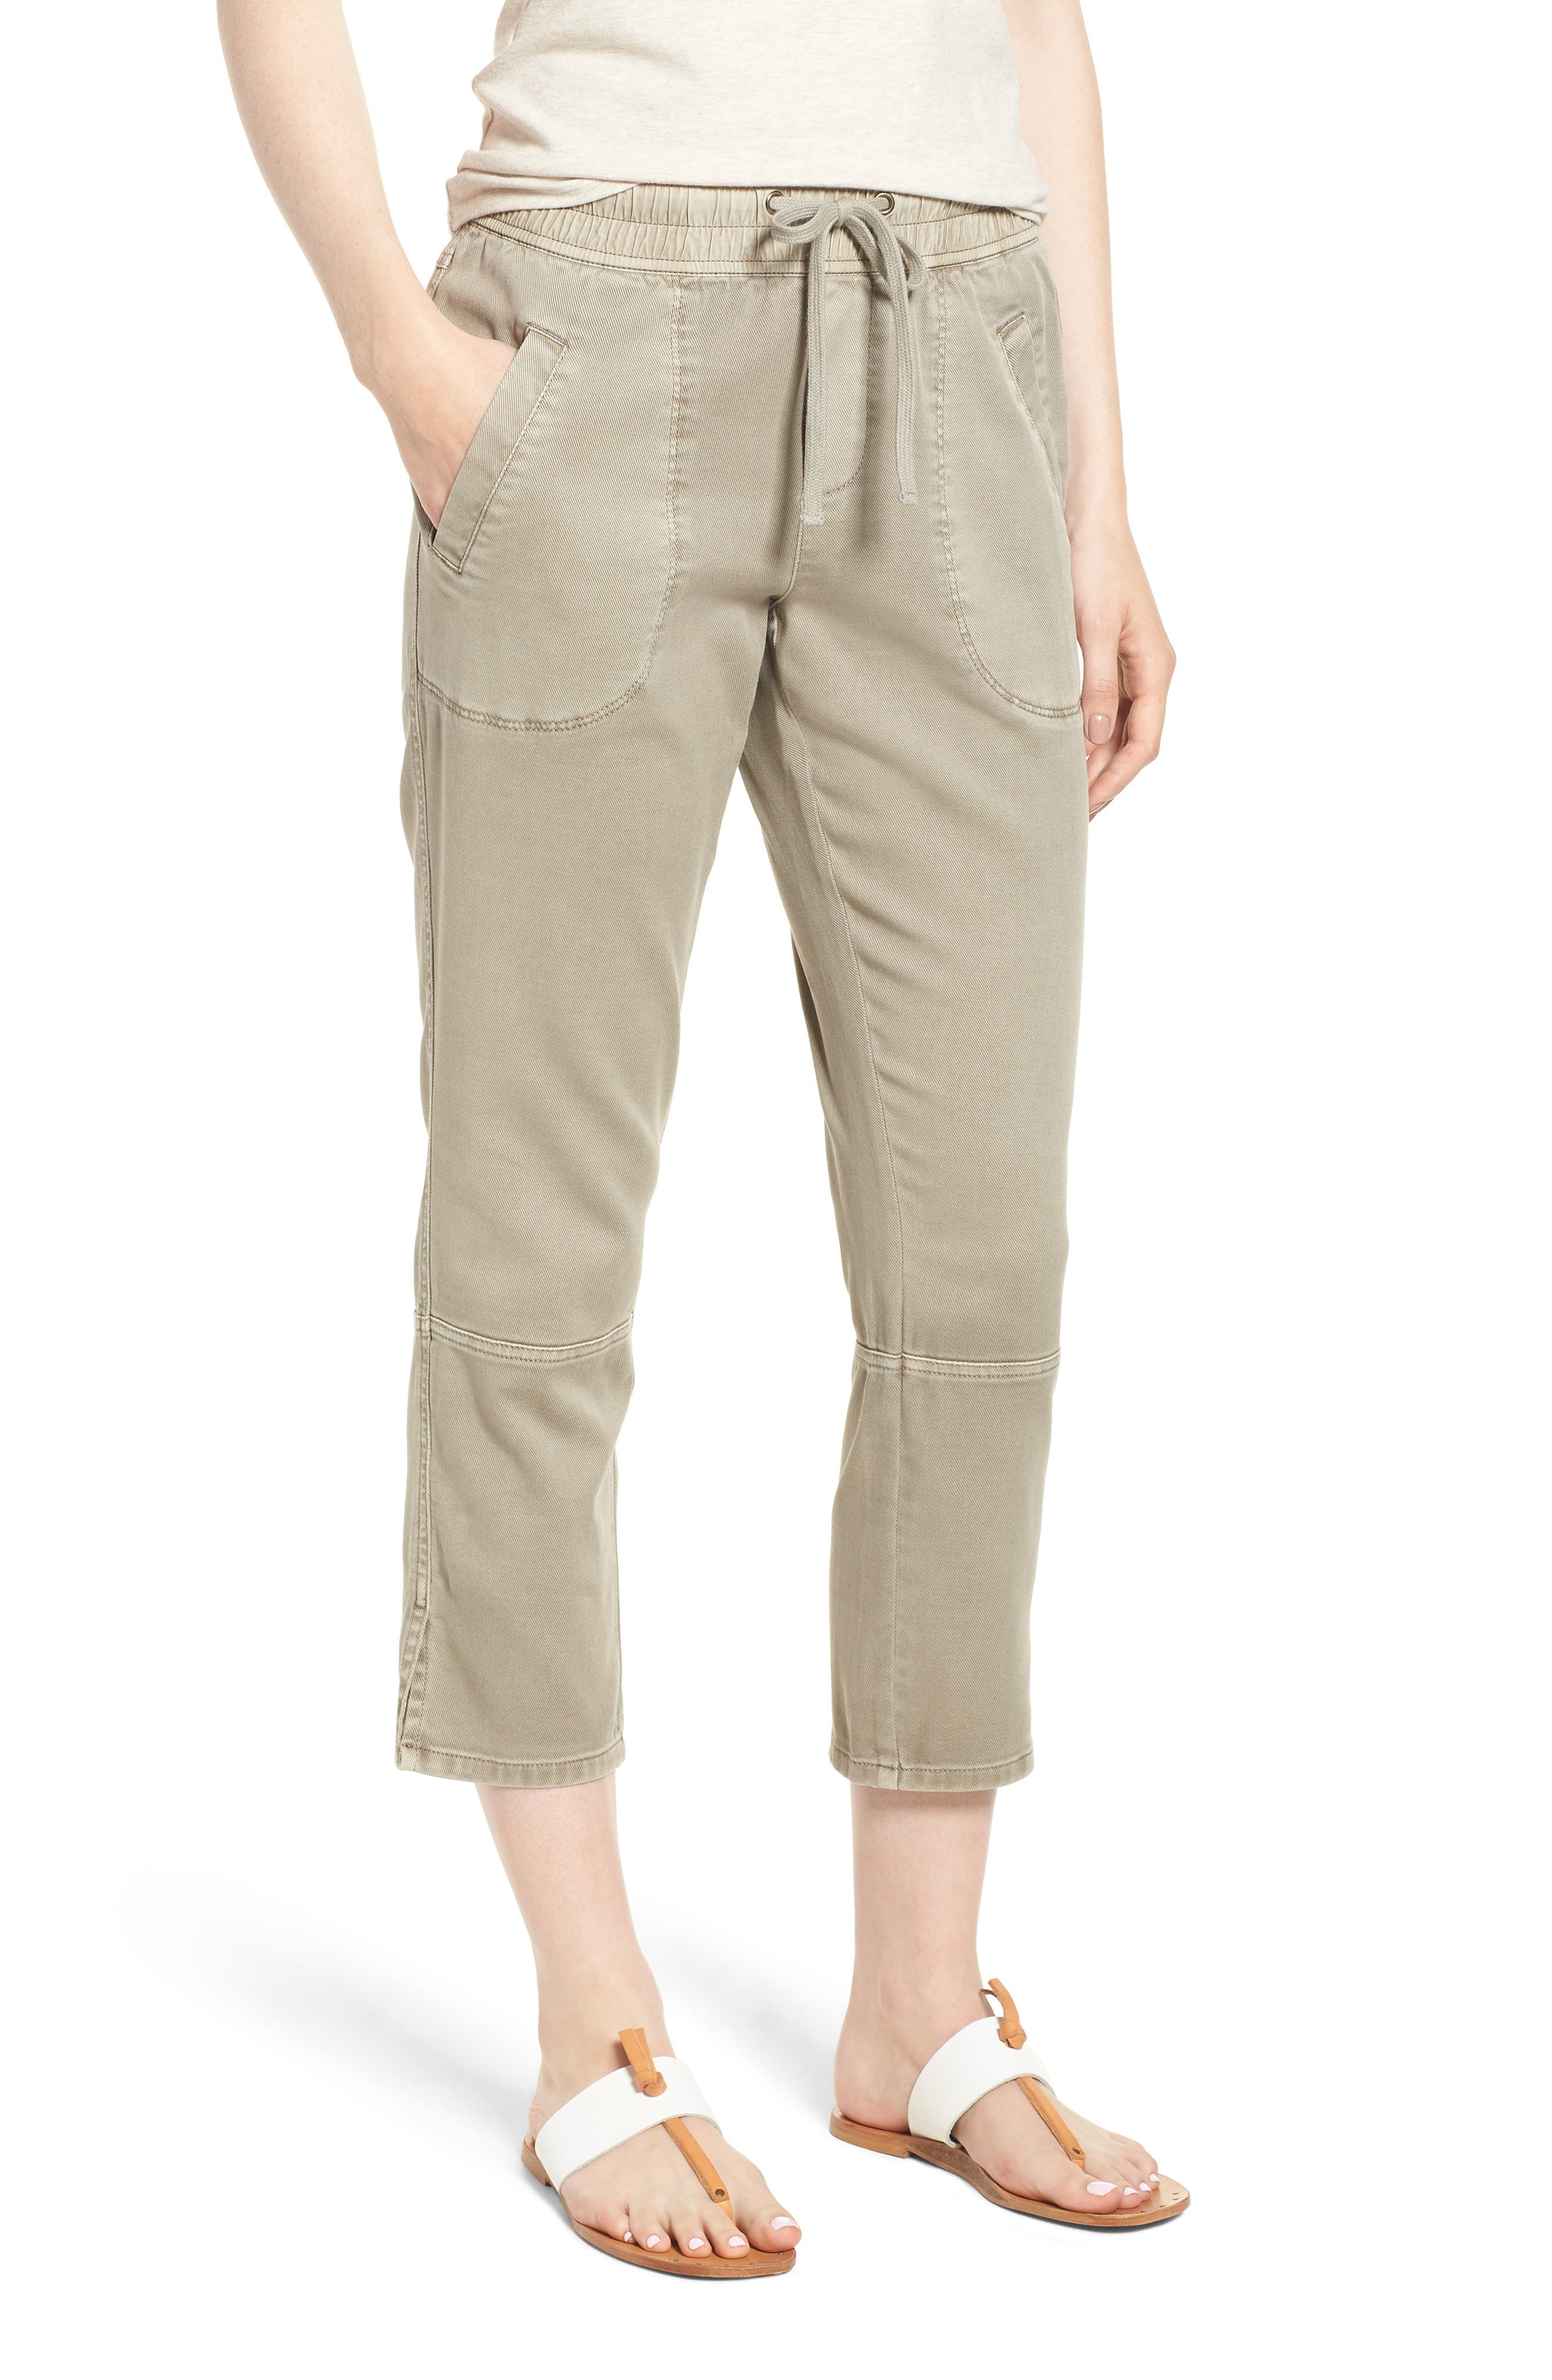 Open Road Ankle Pants,                         Main,                         color, FLAX